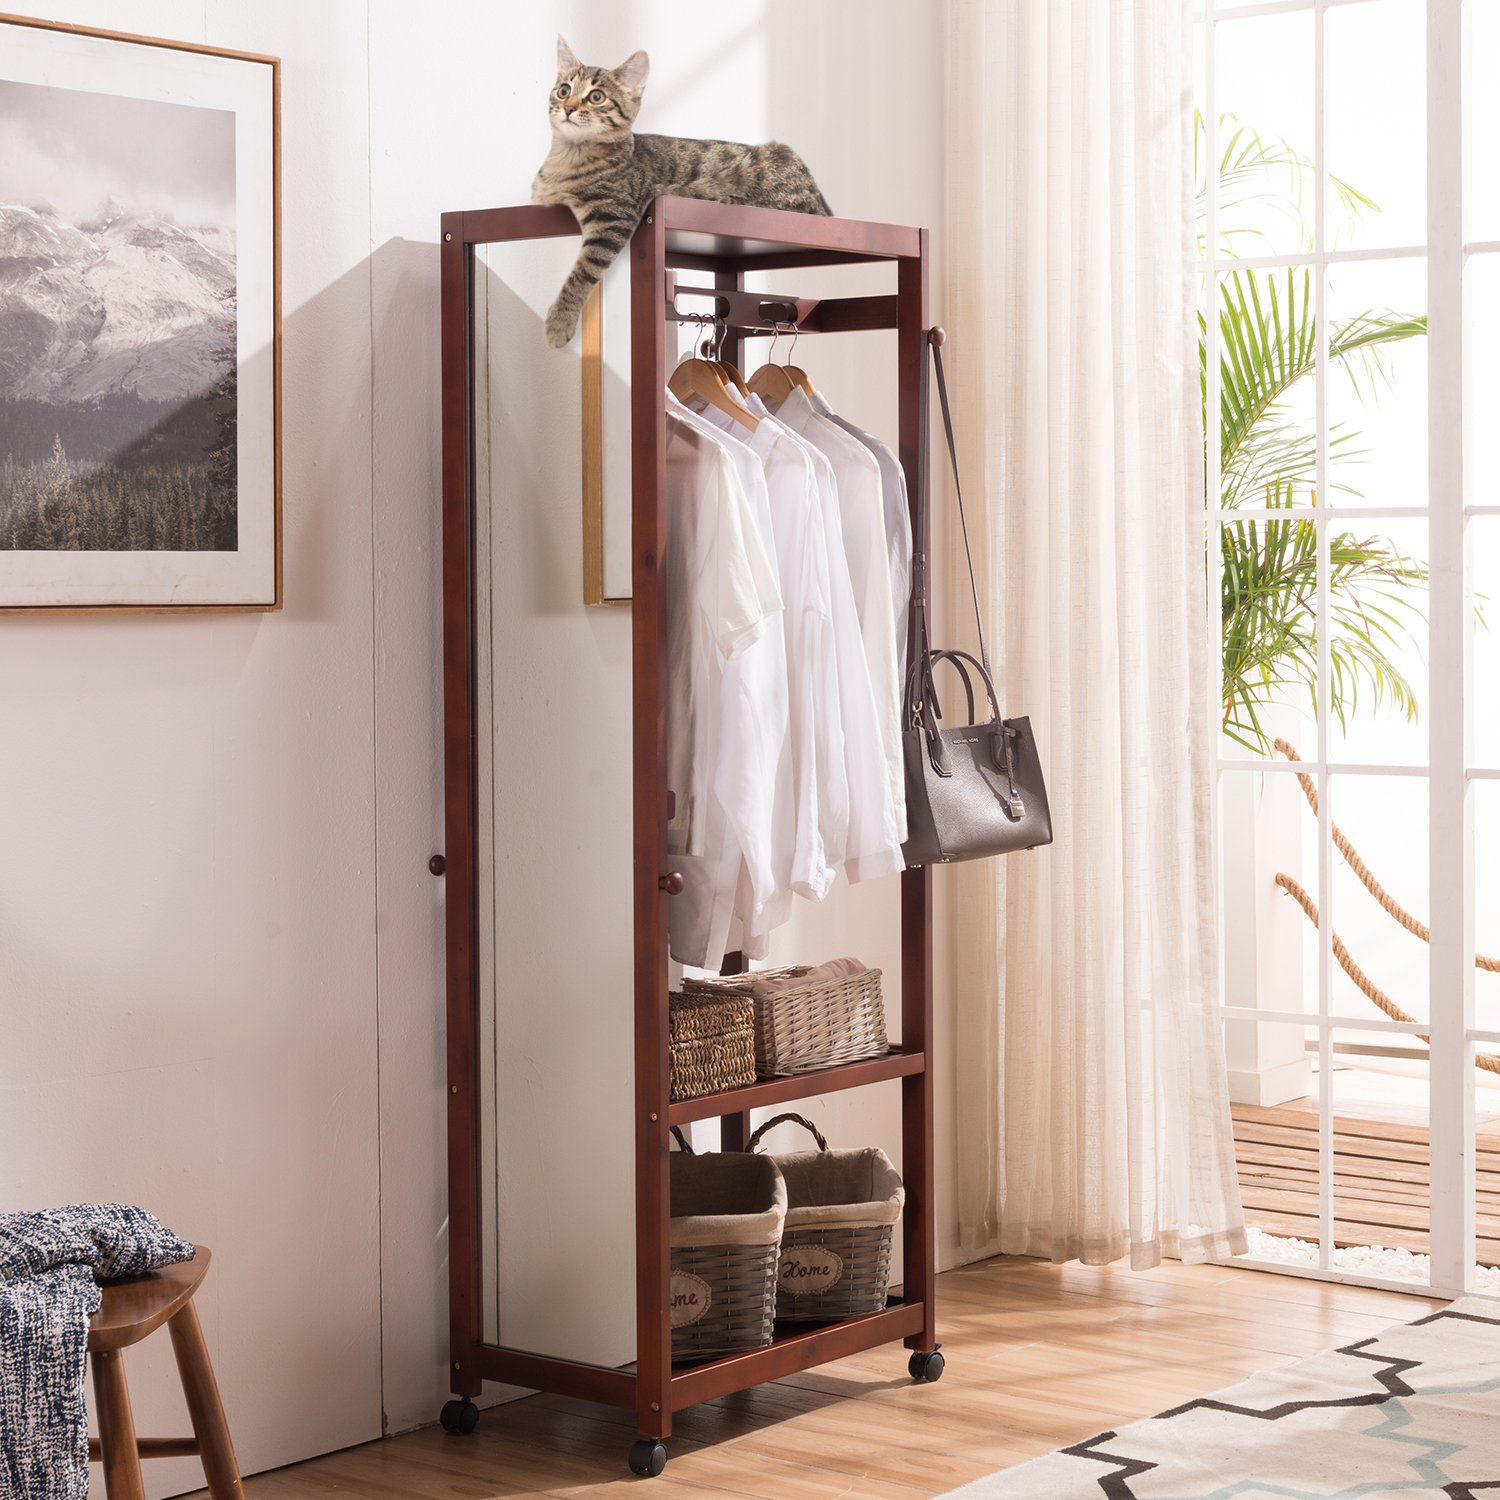 Tiny Times 67'' Tall Free Standing Closet Wardrobe Bedroom Armoires with Full Length Dressing Floor Mirror